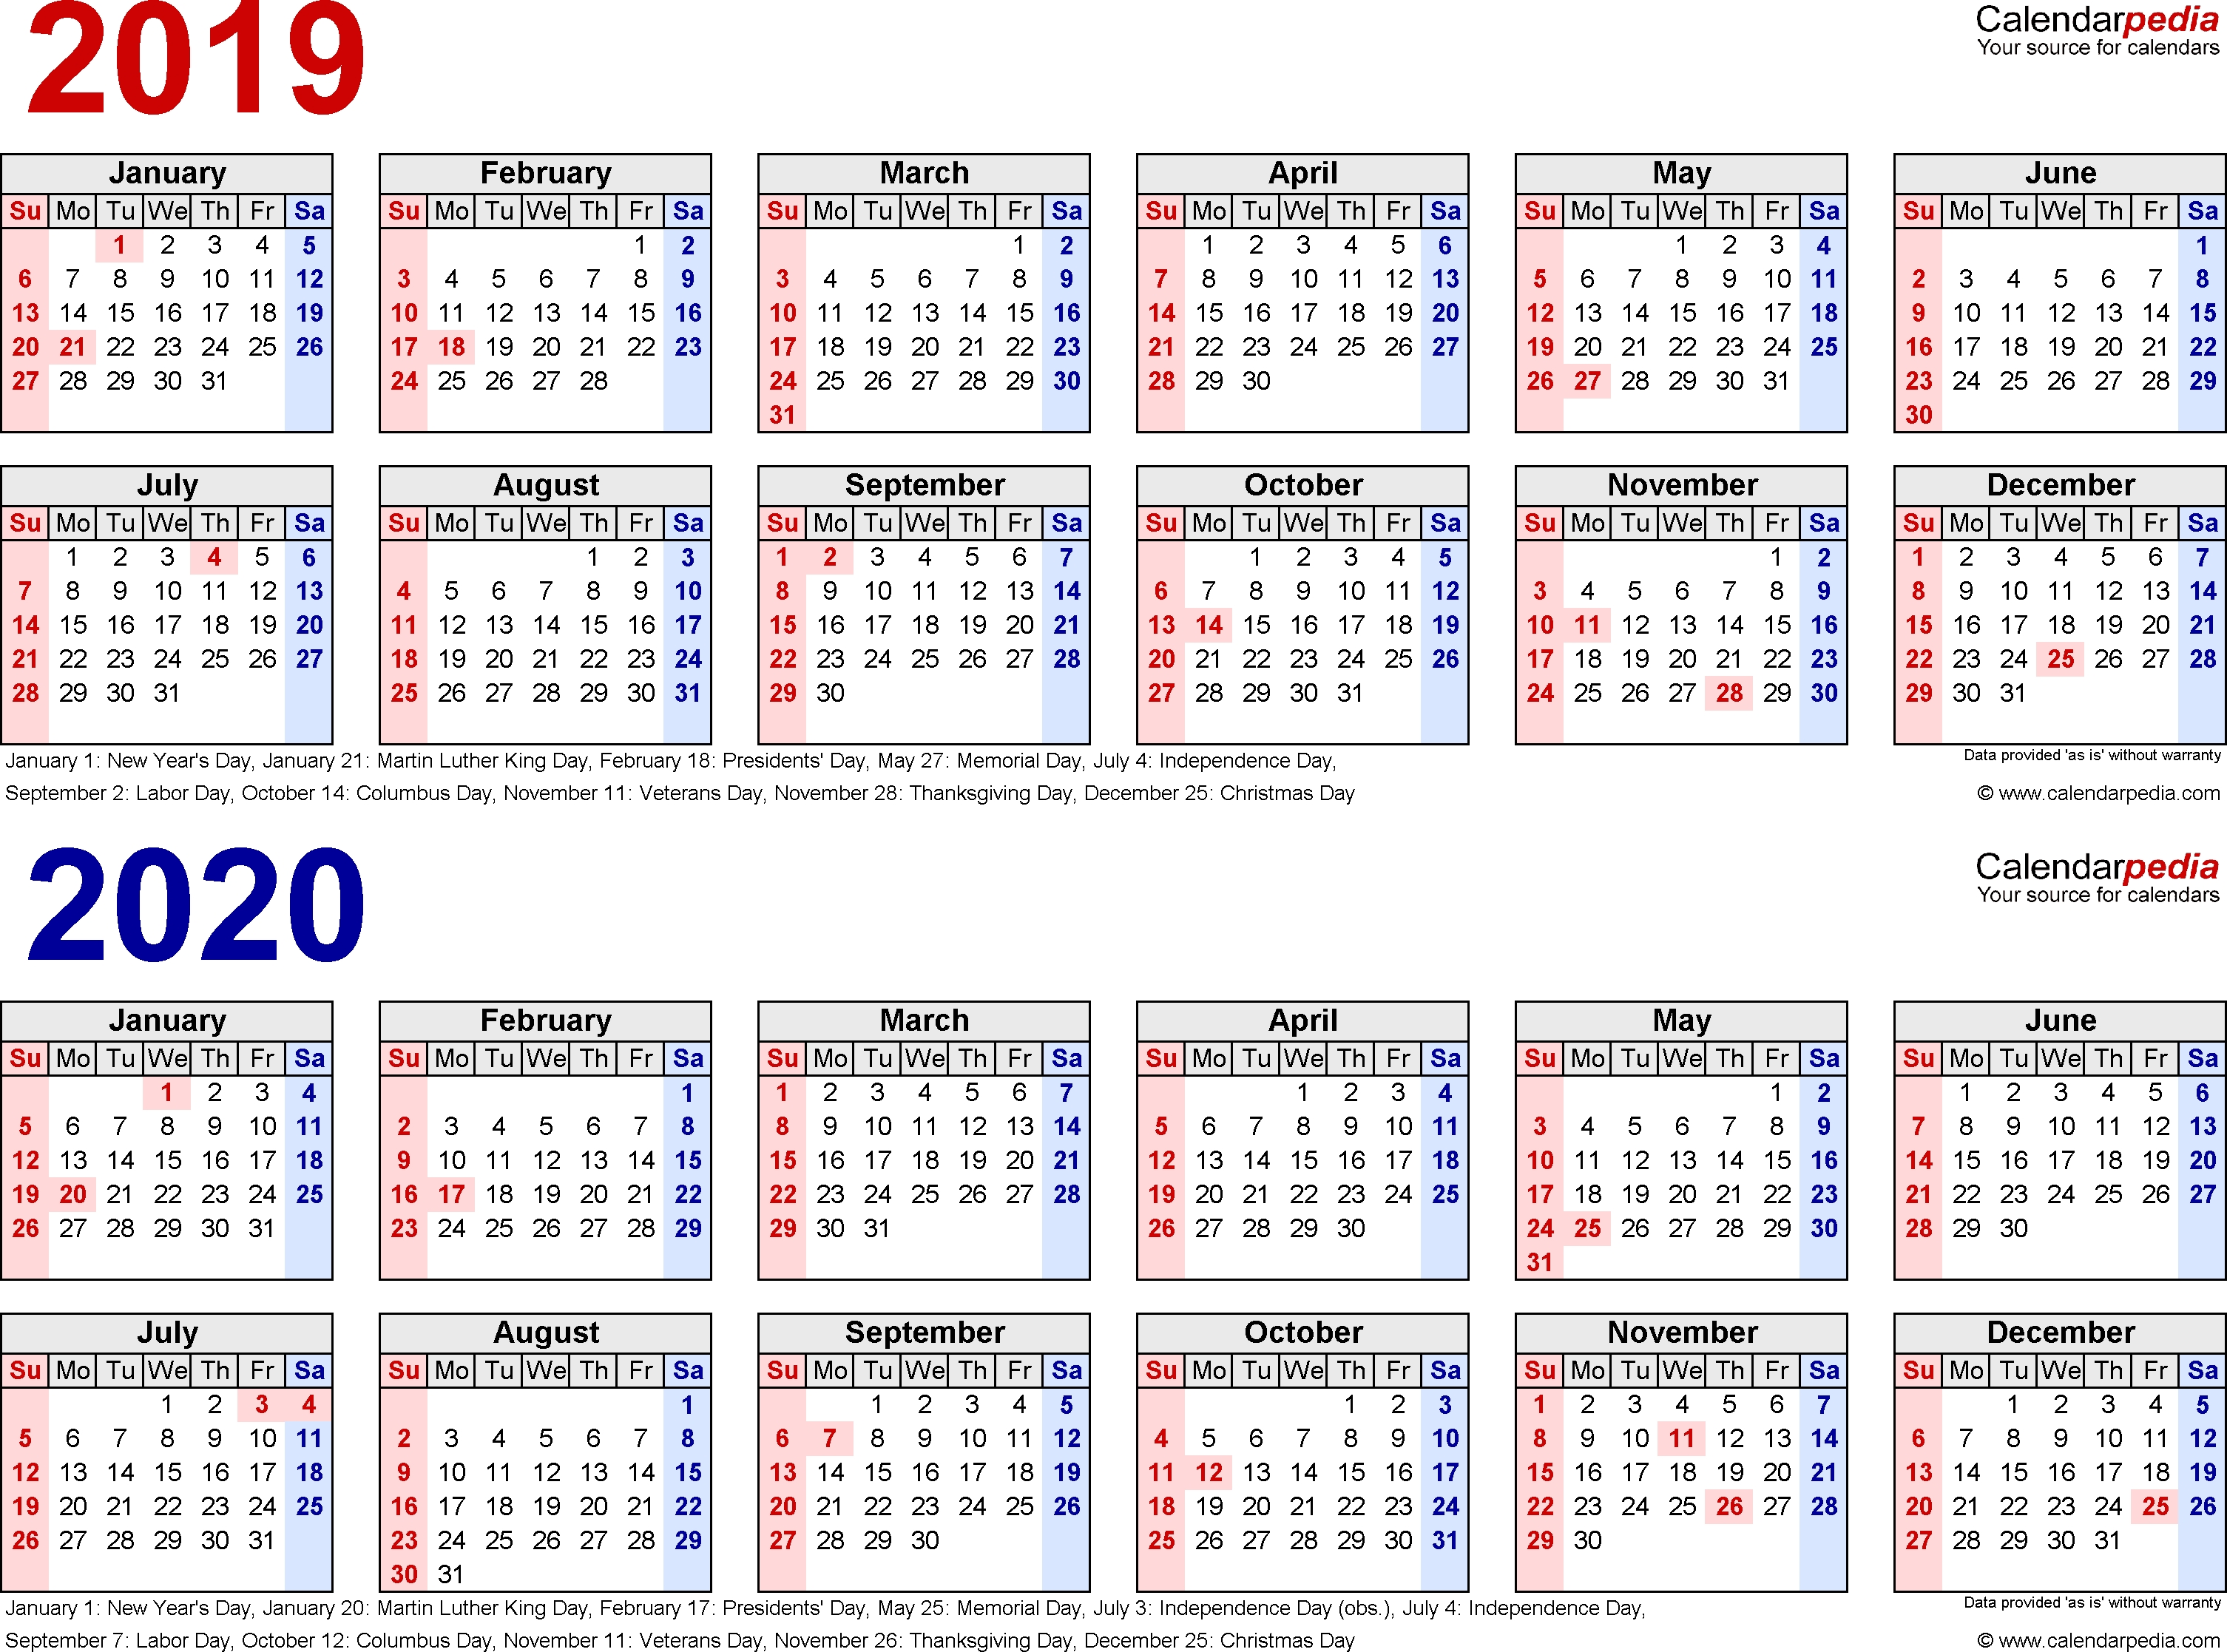 2019-2020 Calendar - Free Printable Two-Year Word Calendars for July 2019-June 2020 Printable Calendar